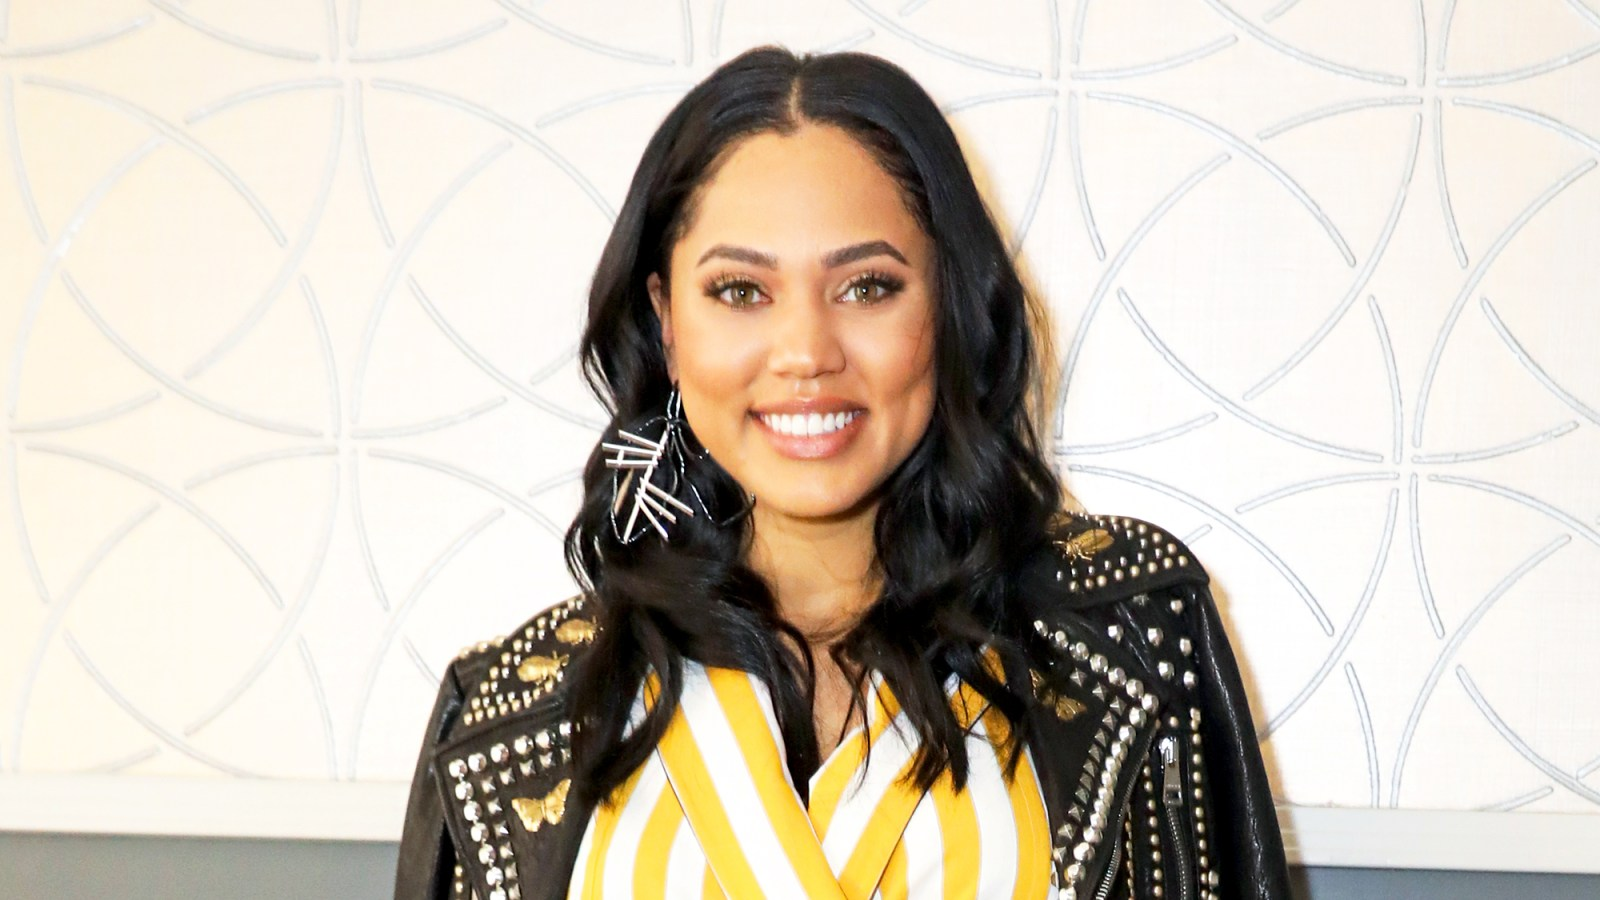 b0eeb92af59e Pregnant Ayesha Curry Shares Sweet Picture of Her Baby Bump: 'This Is the  Life'